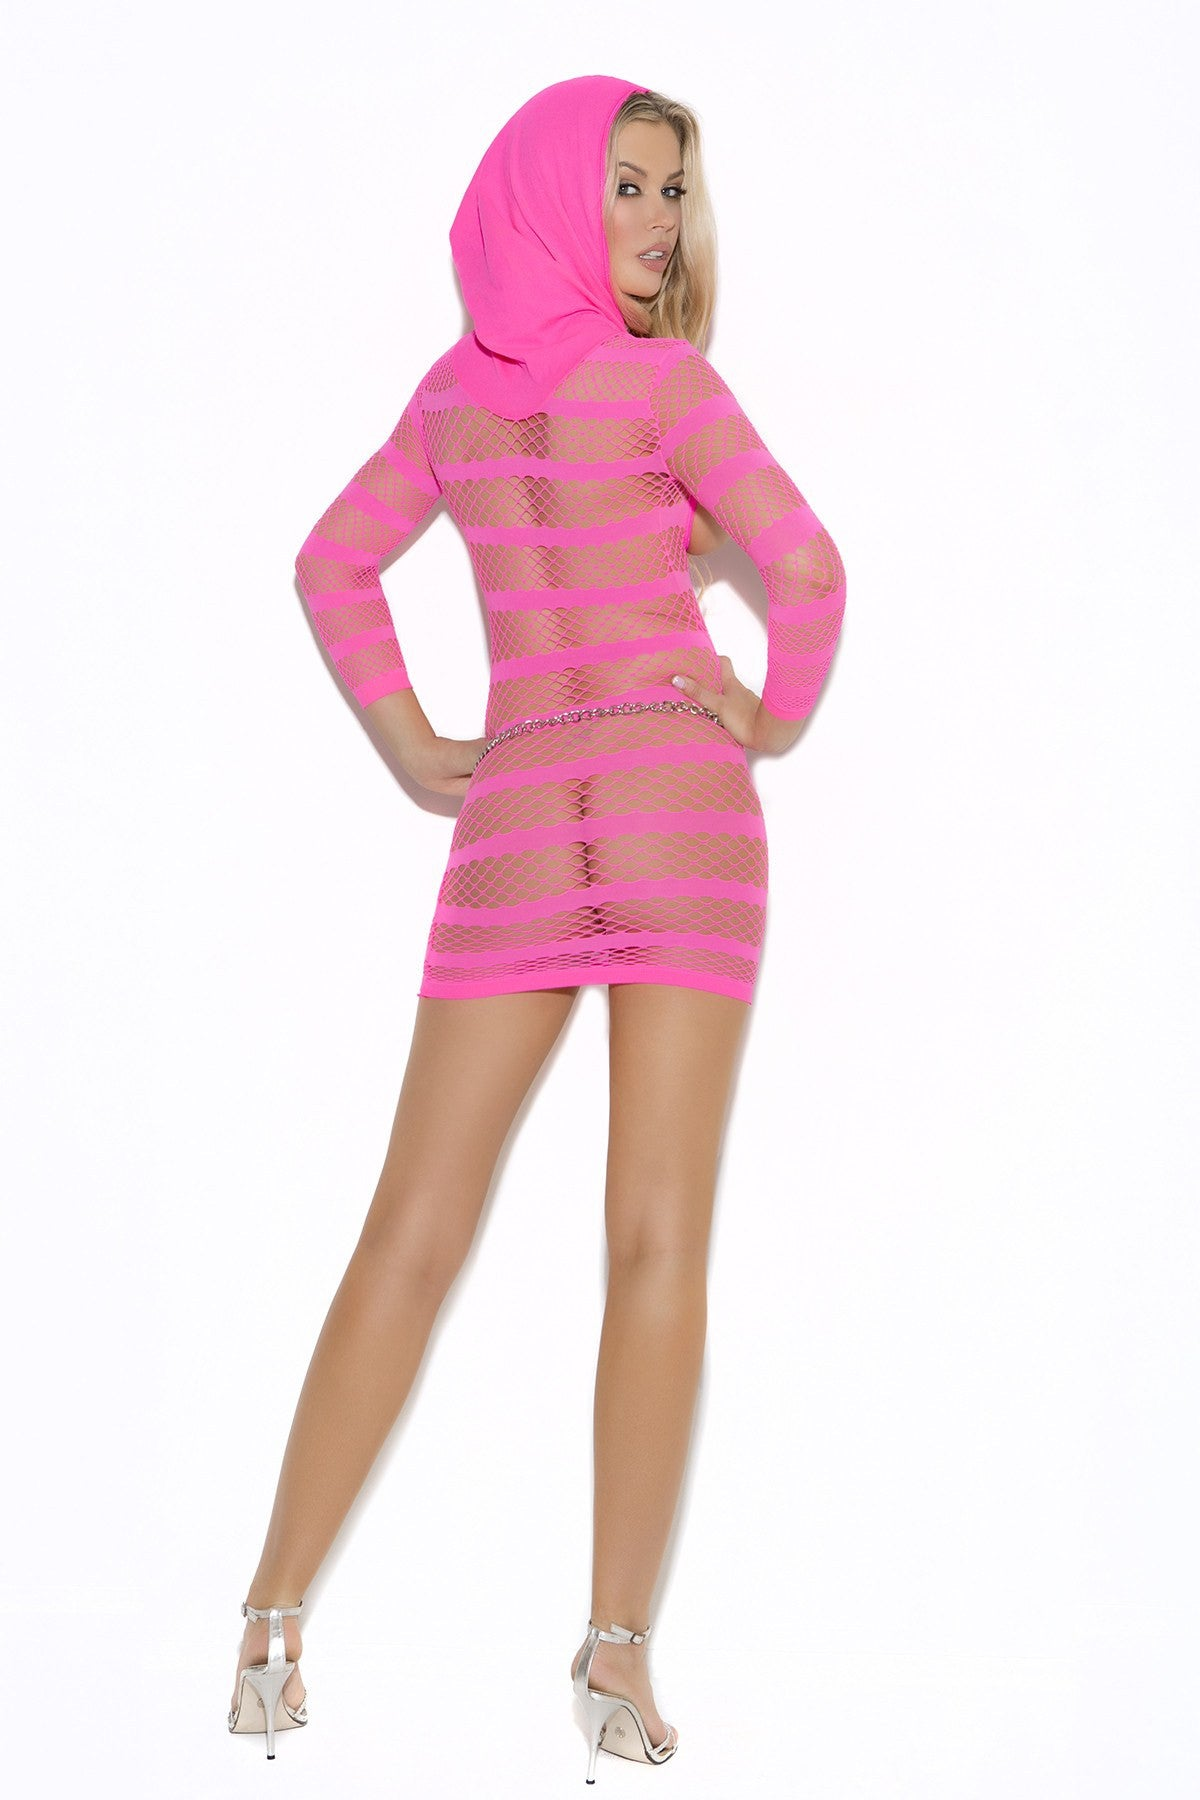 Sexy pink mesh hooded open bust mini dress., Body Stocking, Pierce Me Body Piercing Shops